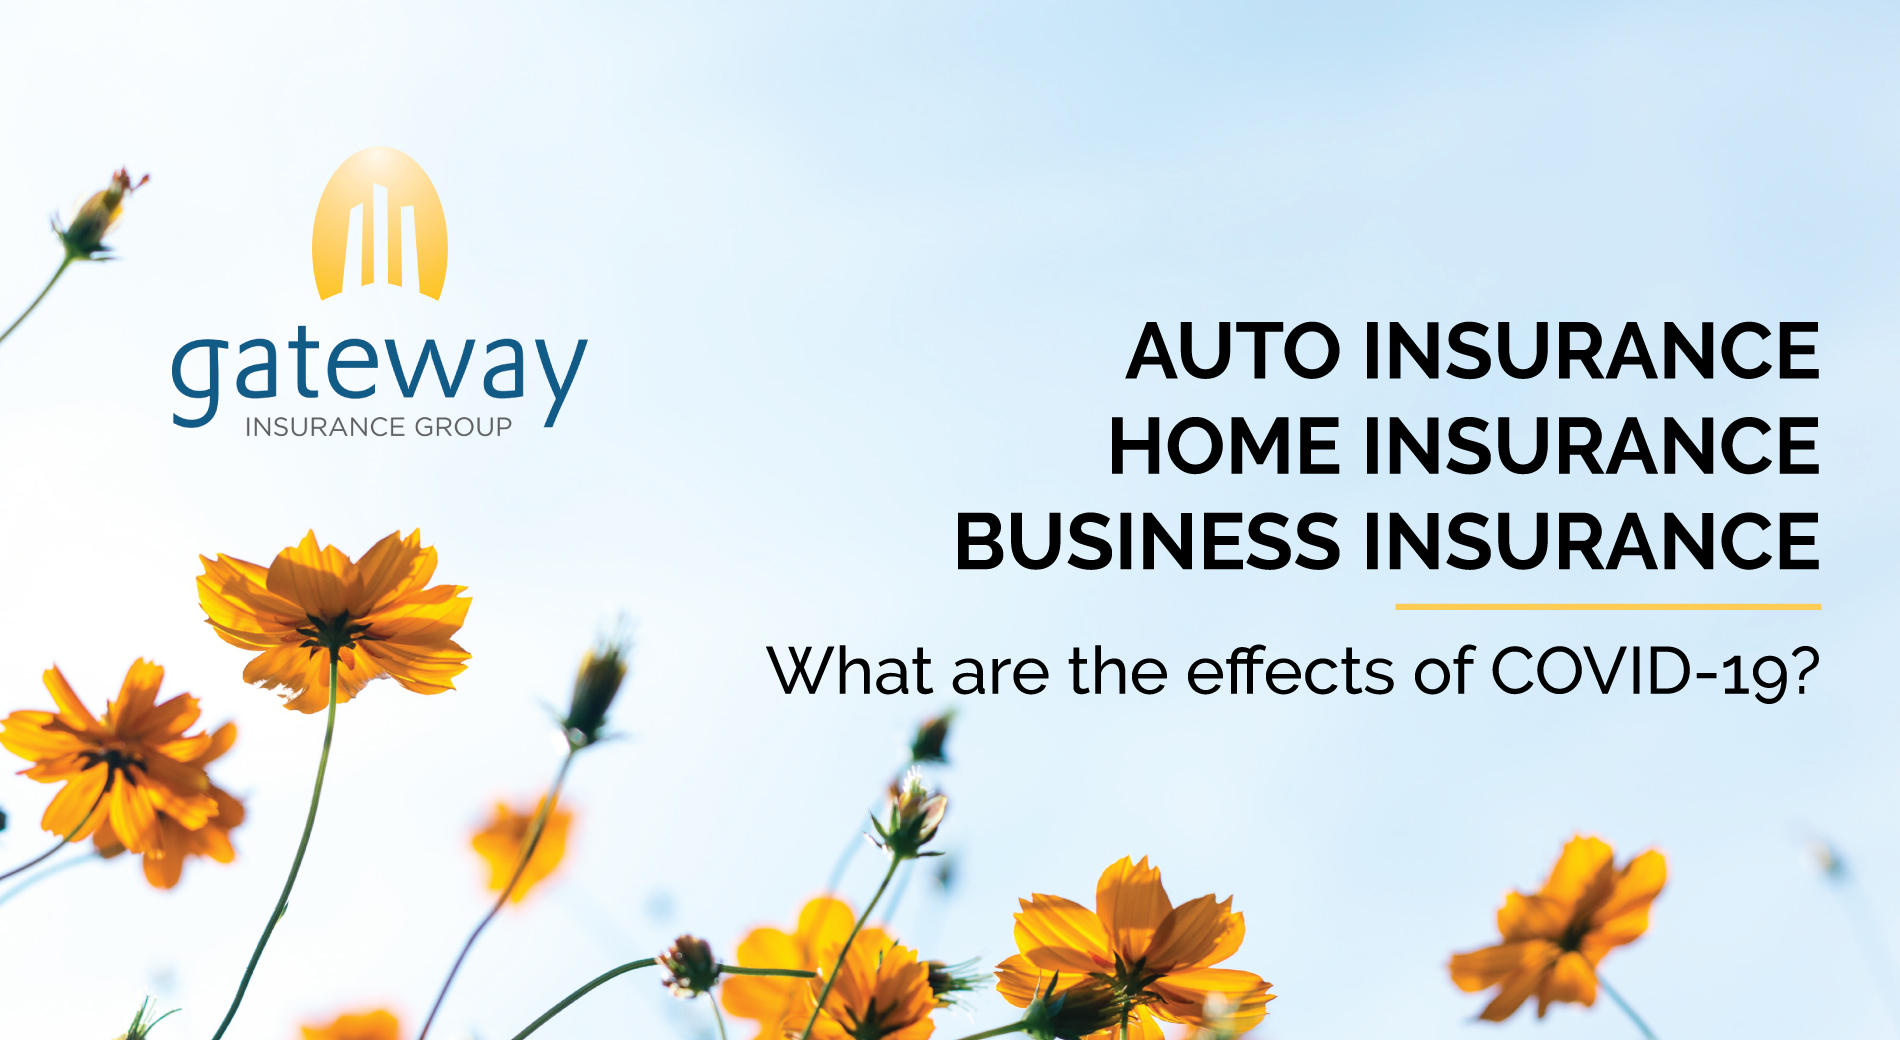 Auto Insurance. Home Insurance. Business Insurance. What are the effects of COVID-19?